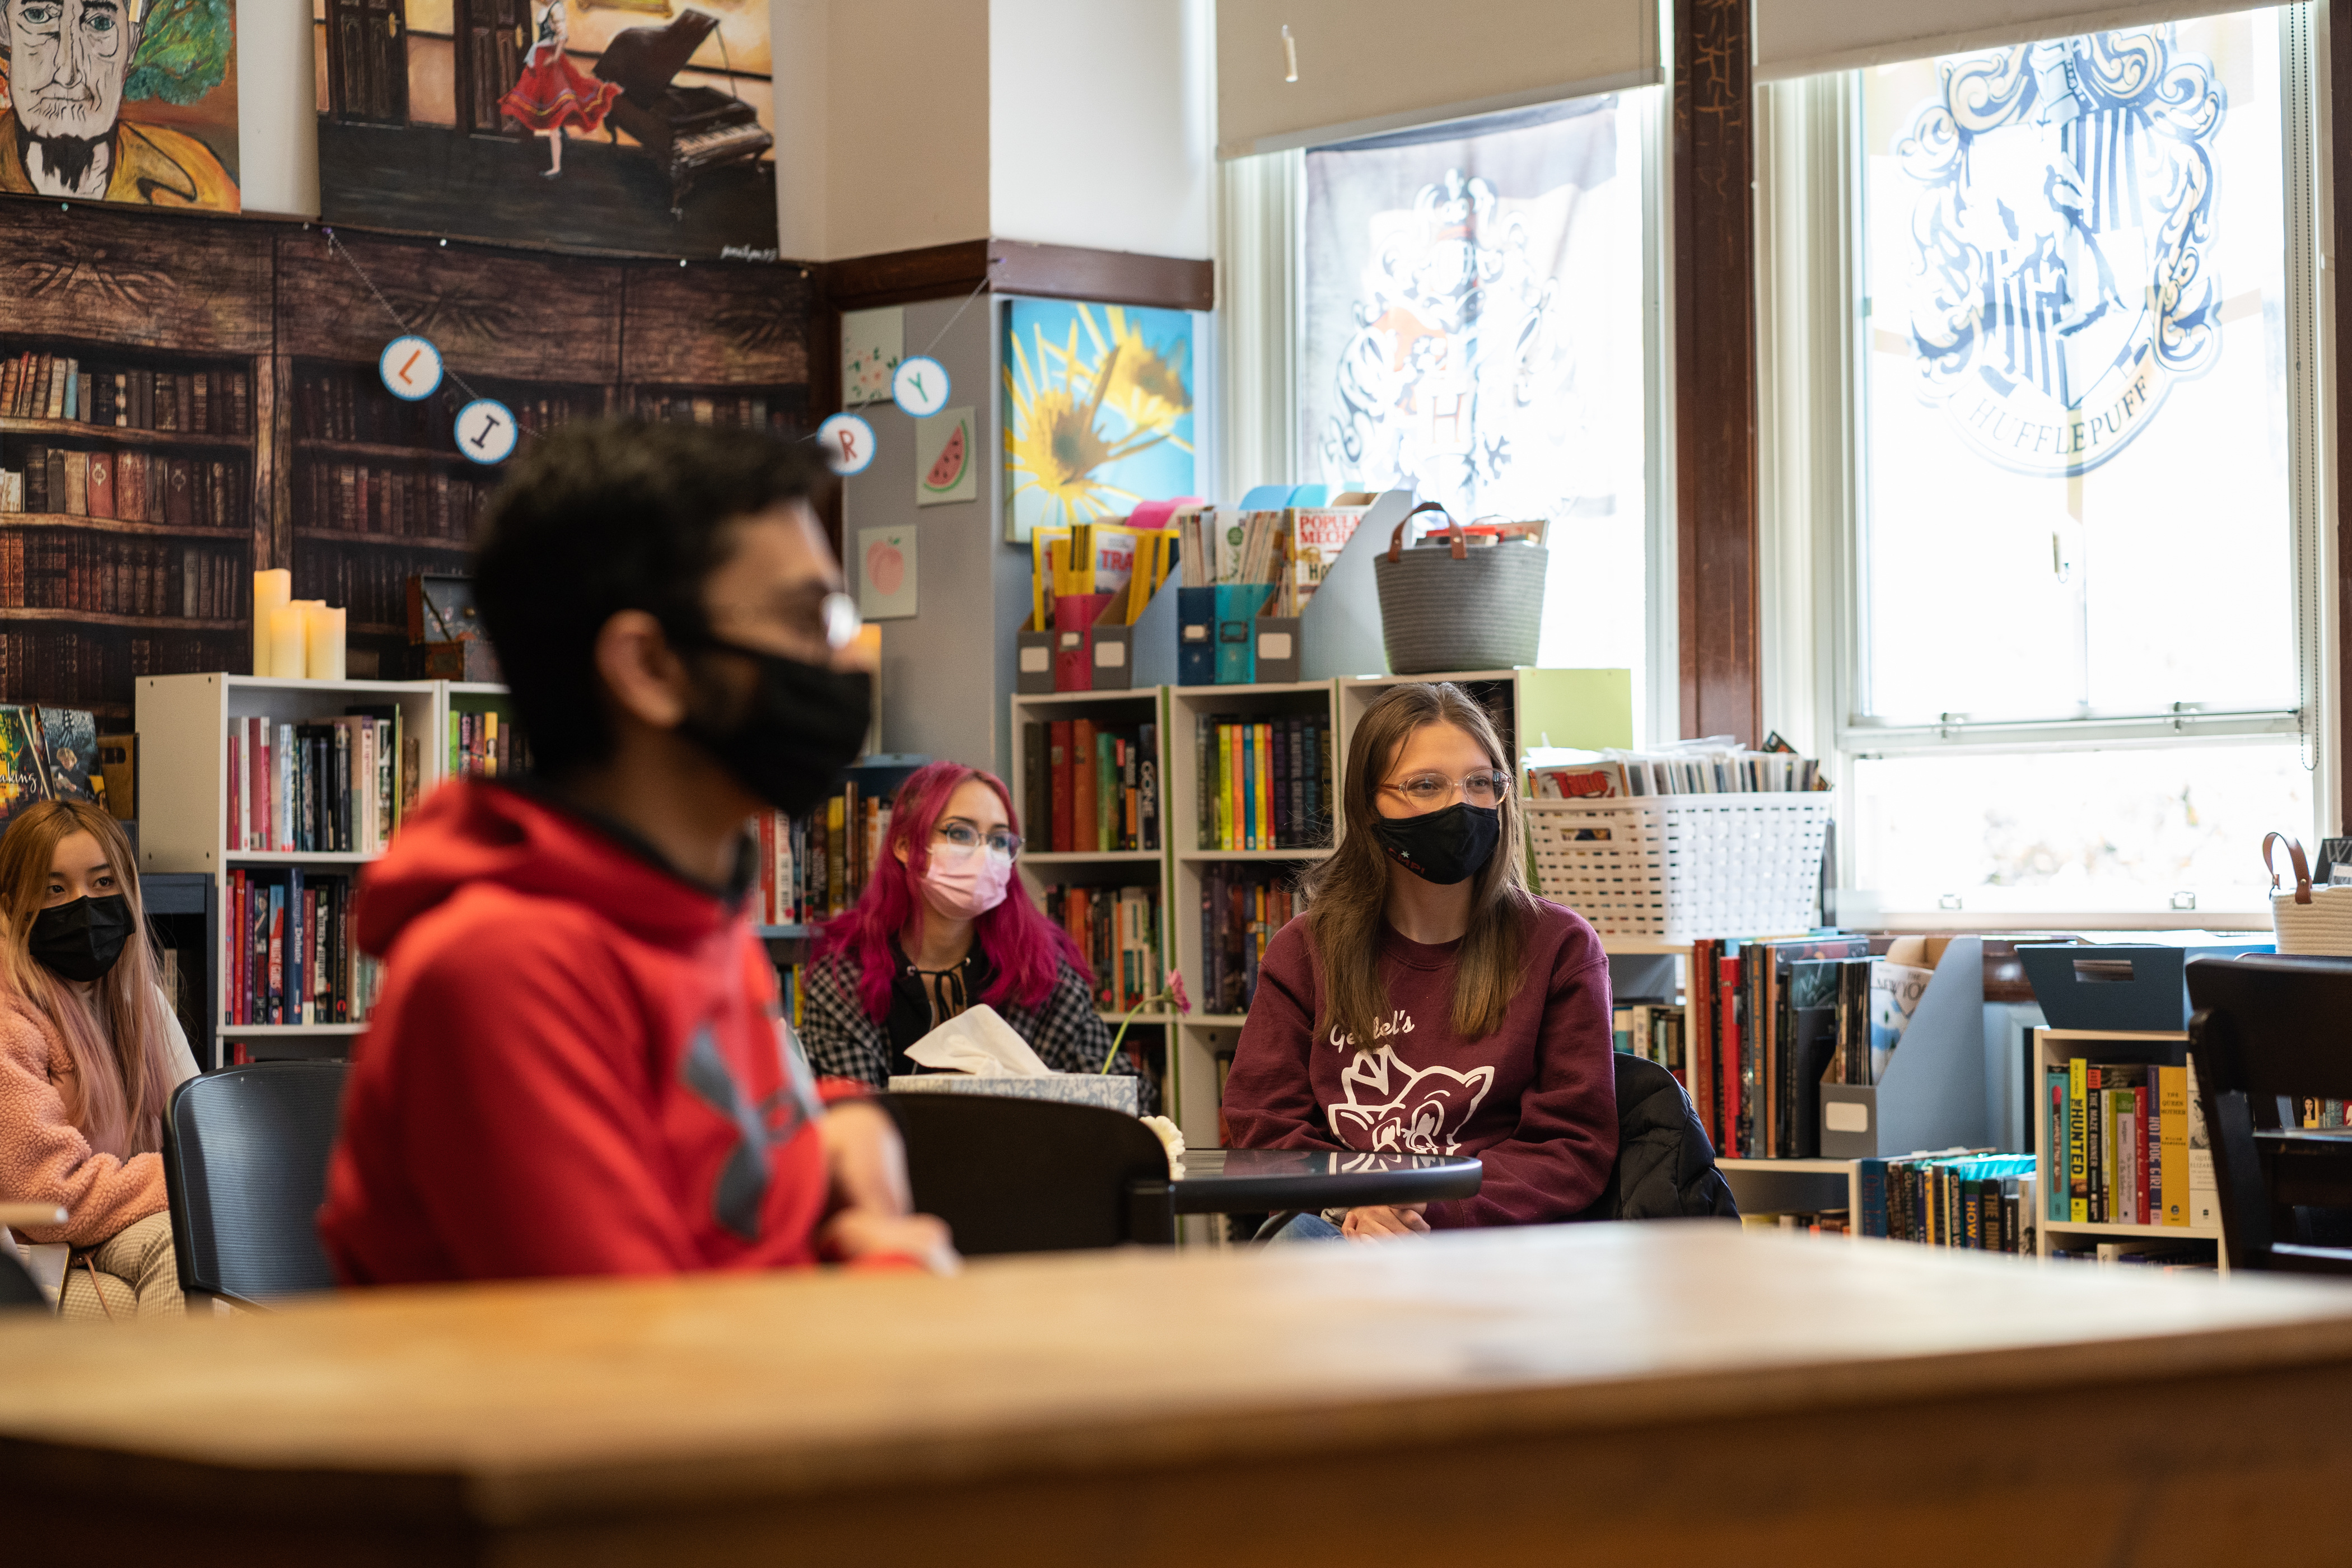 Students discuss plans in class, sitting in distanced desks wearing protective masks.